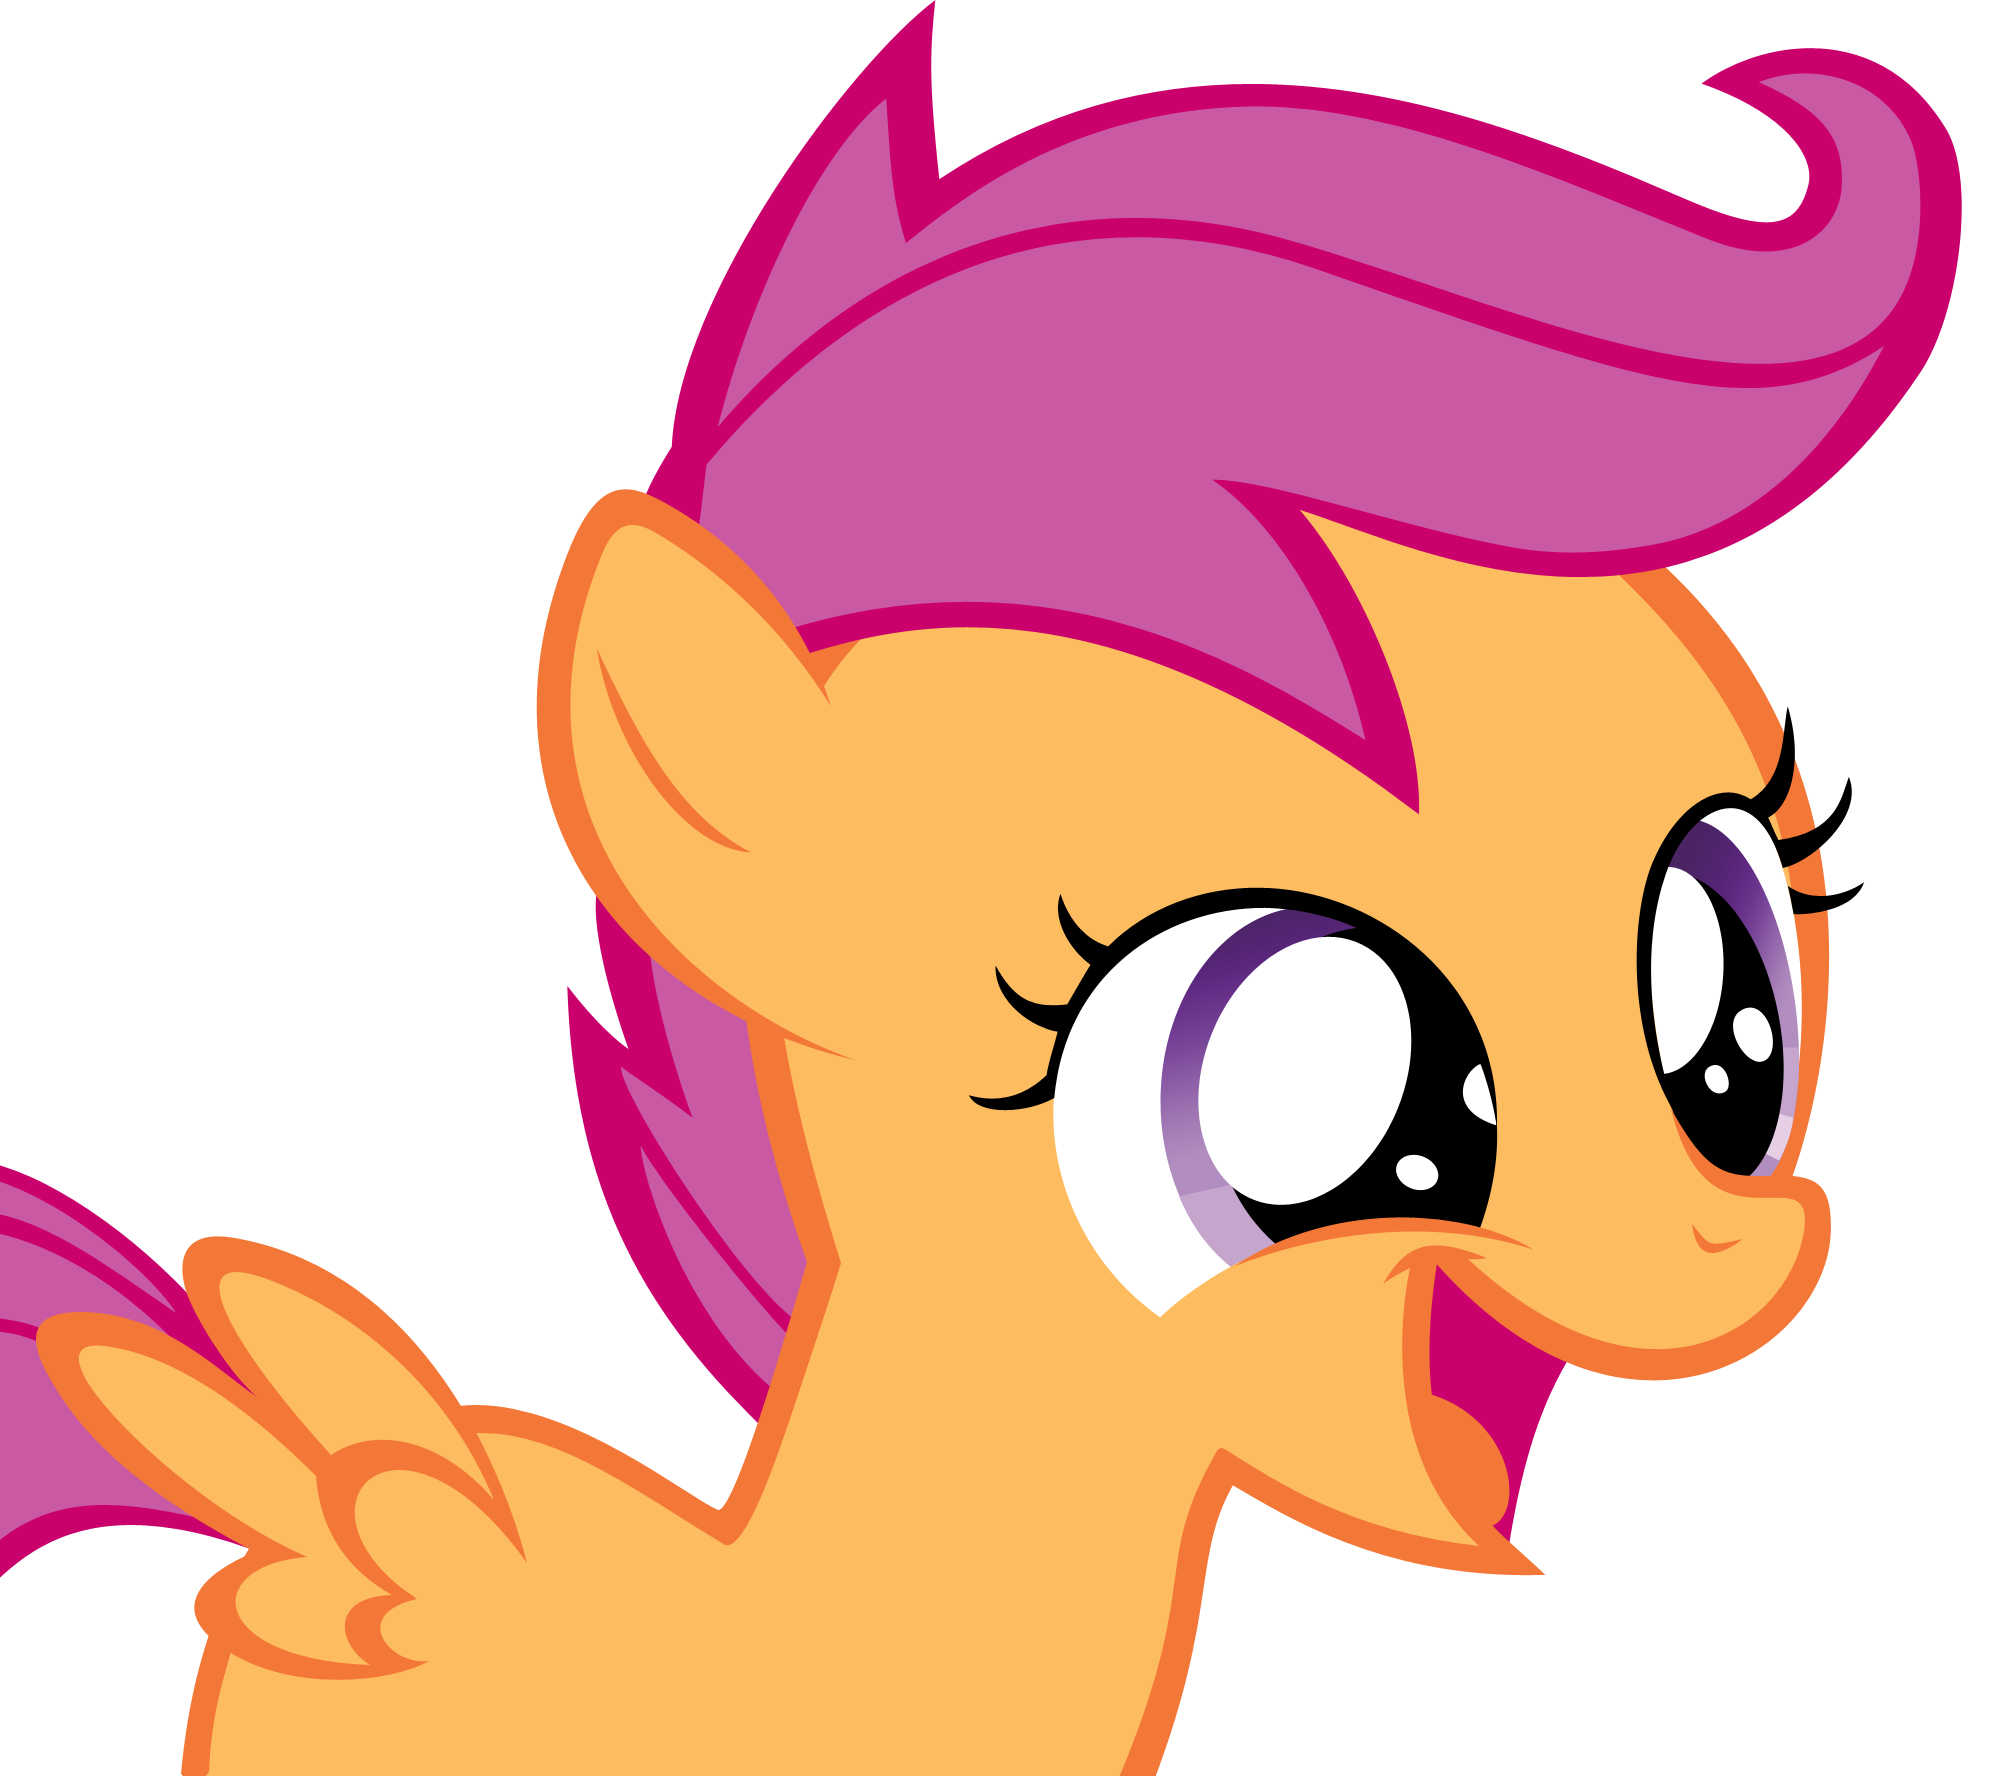 Happy Scootaloo By Emonroe7 On Deviantart We have had applebloom and sweetie belle so far in the pony name series of videos, and her turn has finally arrived. happy scootaloo by emonroe7 on deviantart